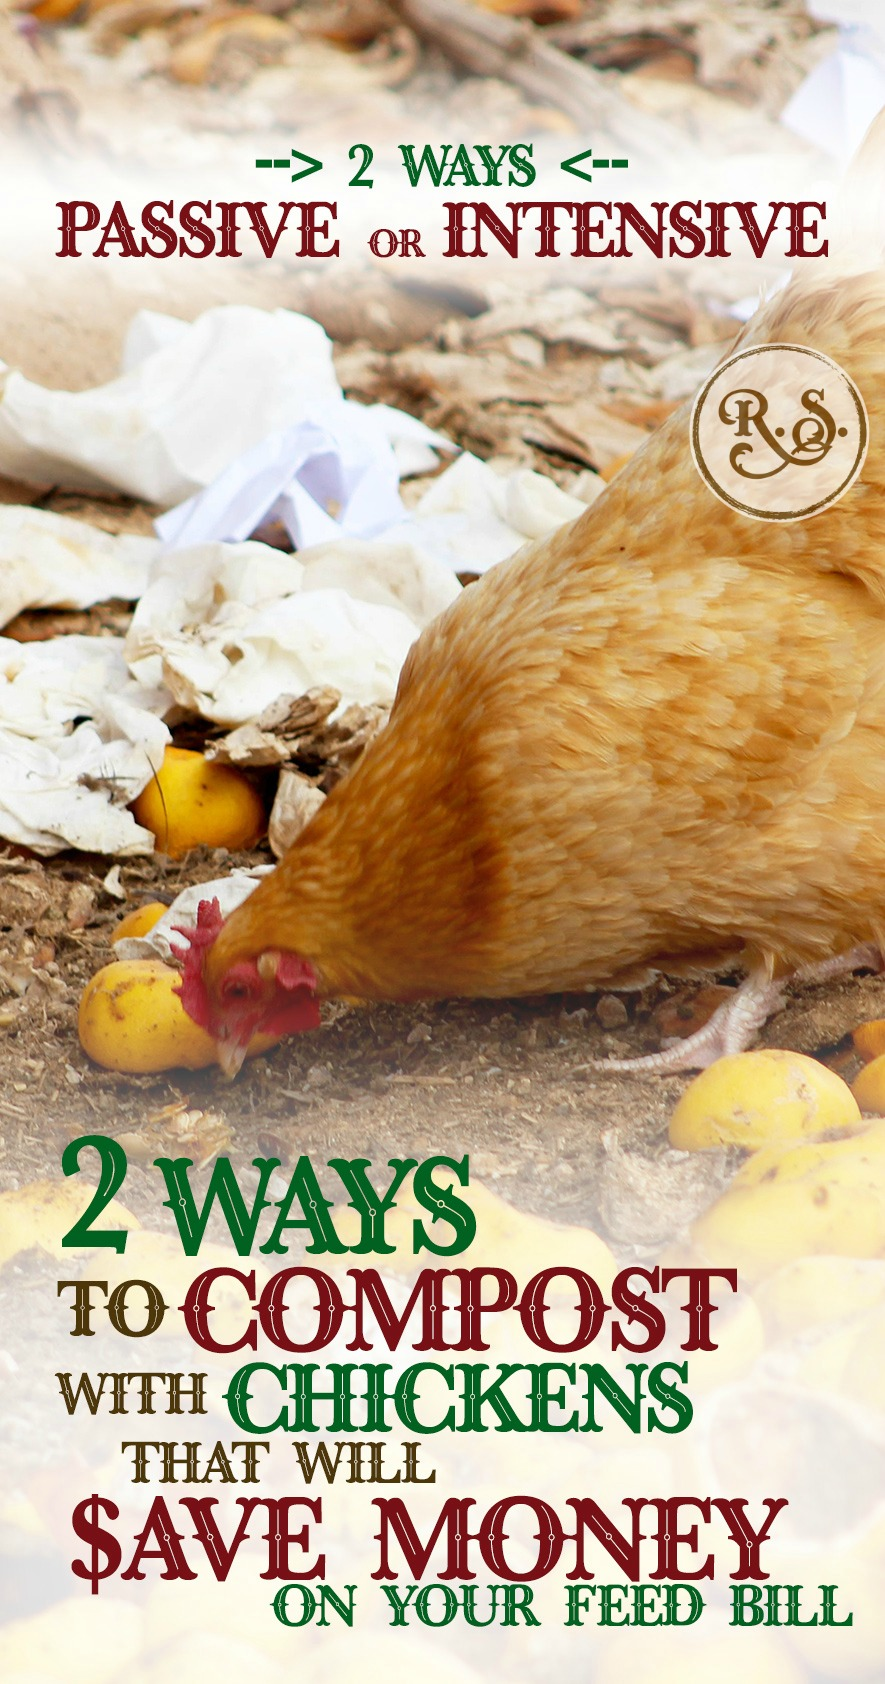 2 ways to compost with backyard chickens that will save money on